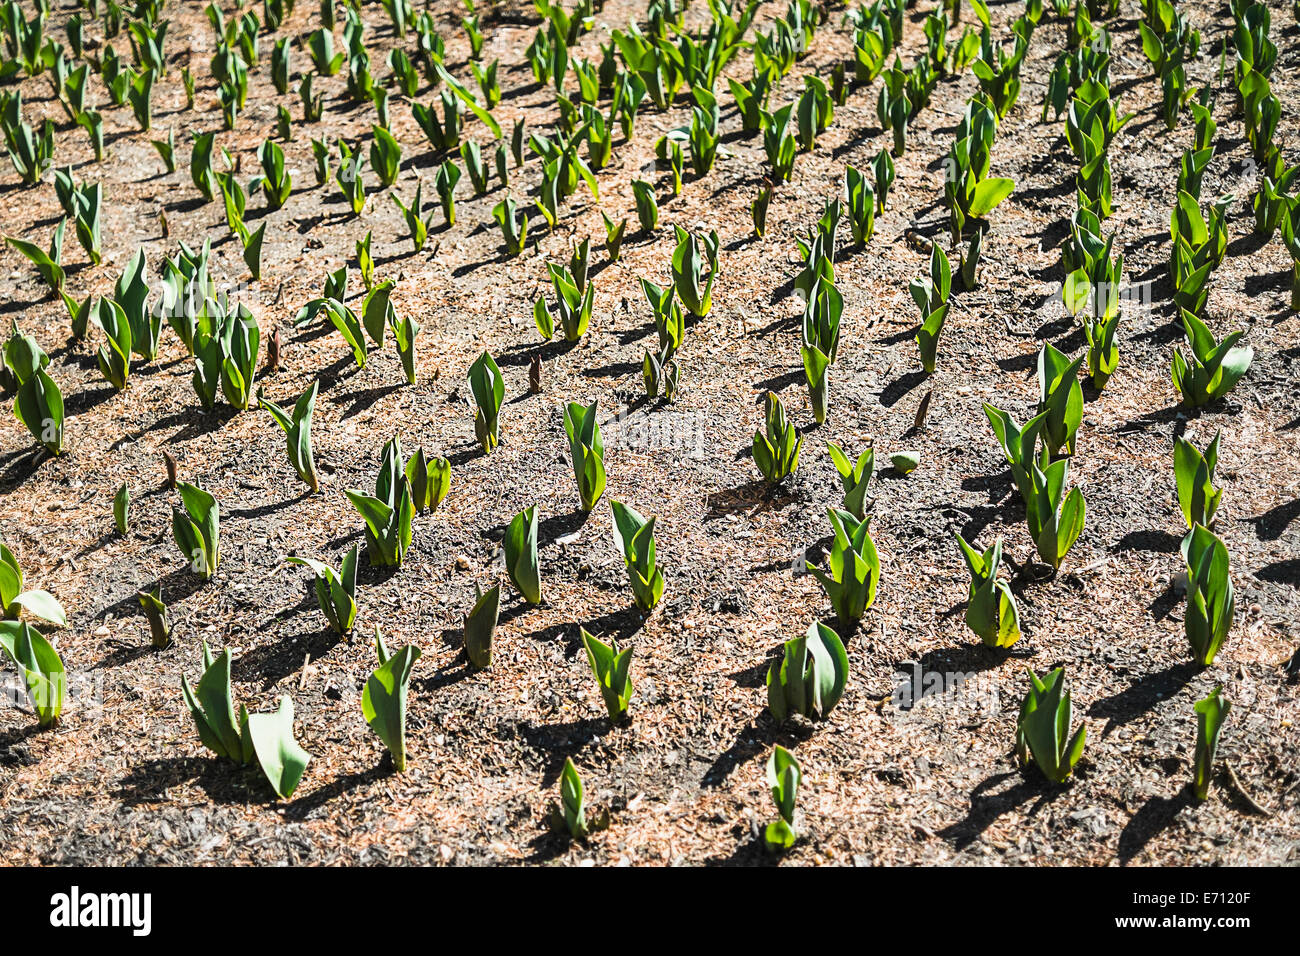 Small green plants emerging from the soil in a field. - Stock Image